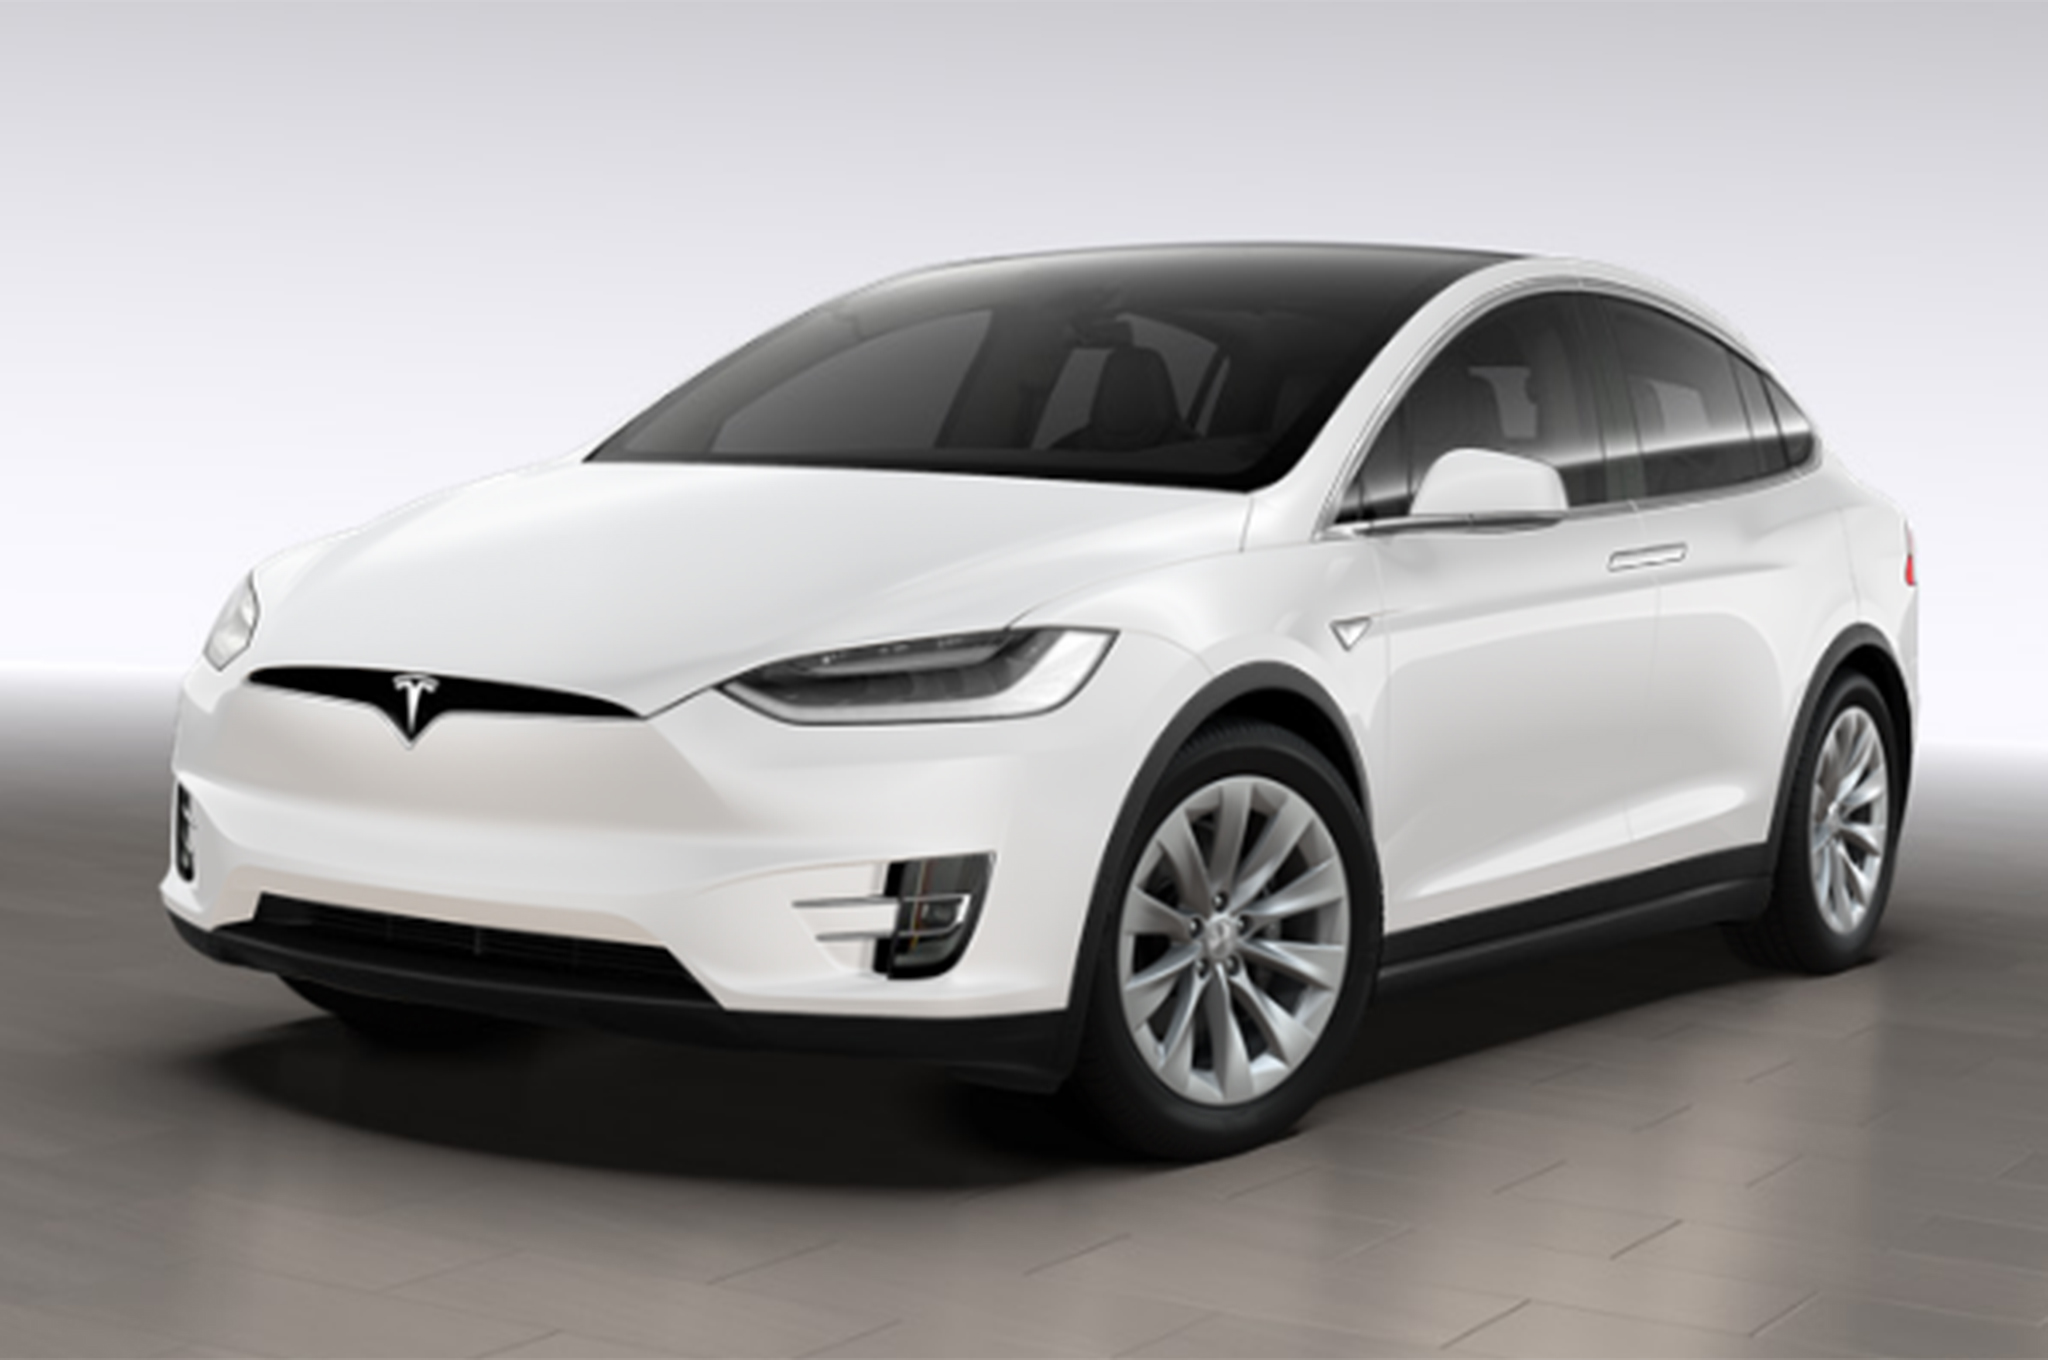 apr s 1 600 km charger une tesla au superchargeur co tera 20 cts par kwh tech numerama. Black Bedroom Furniture Sets. Home Design Ideas